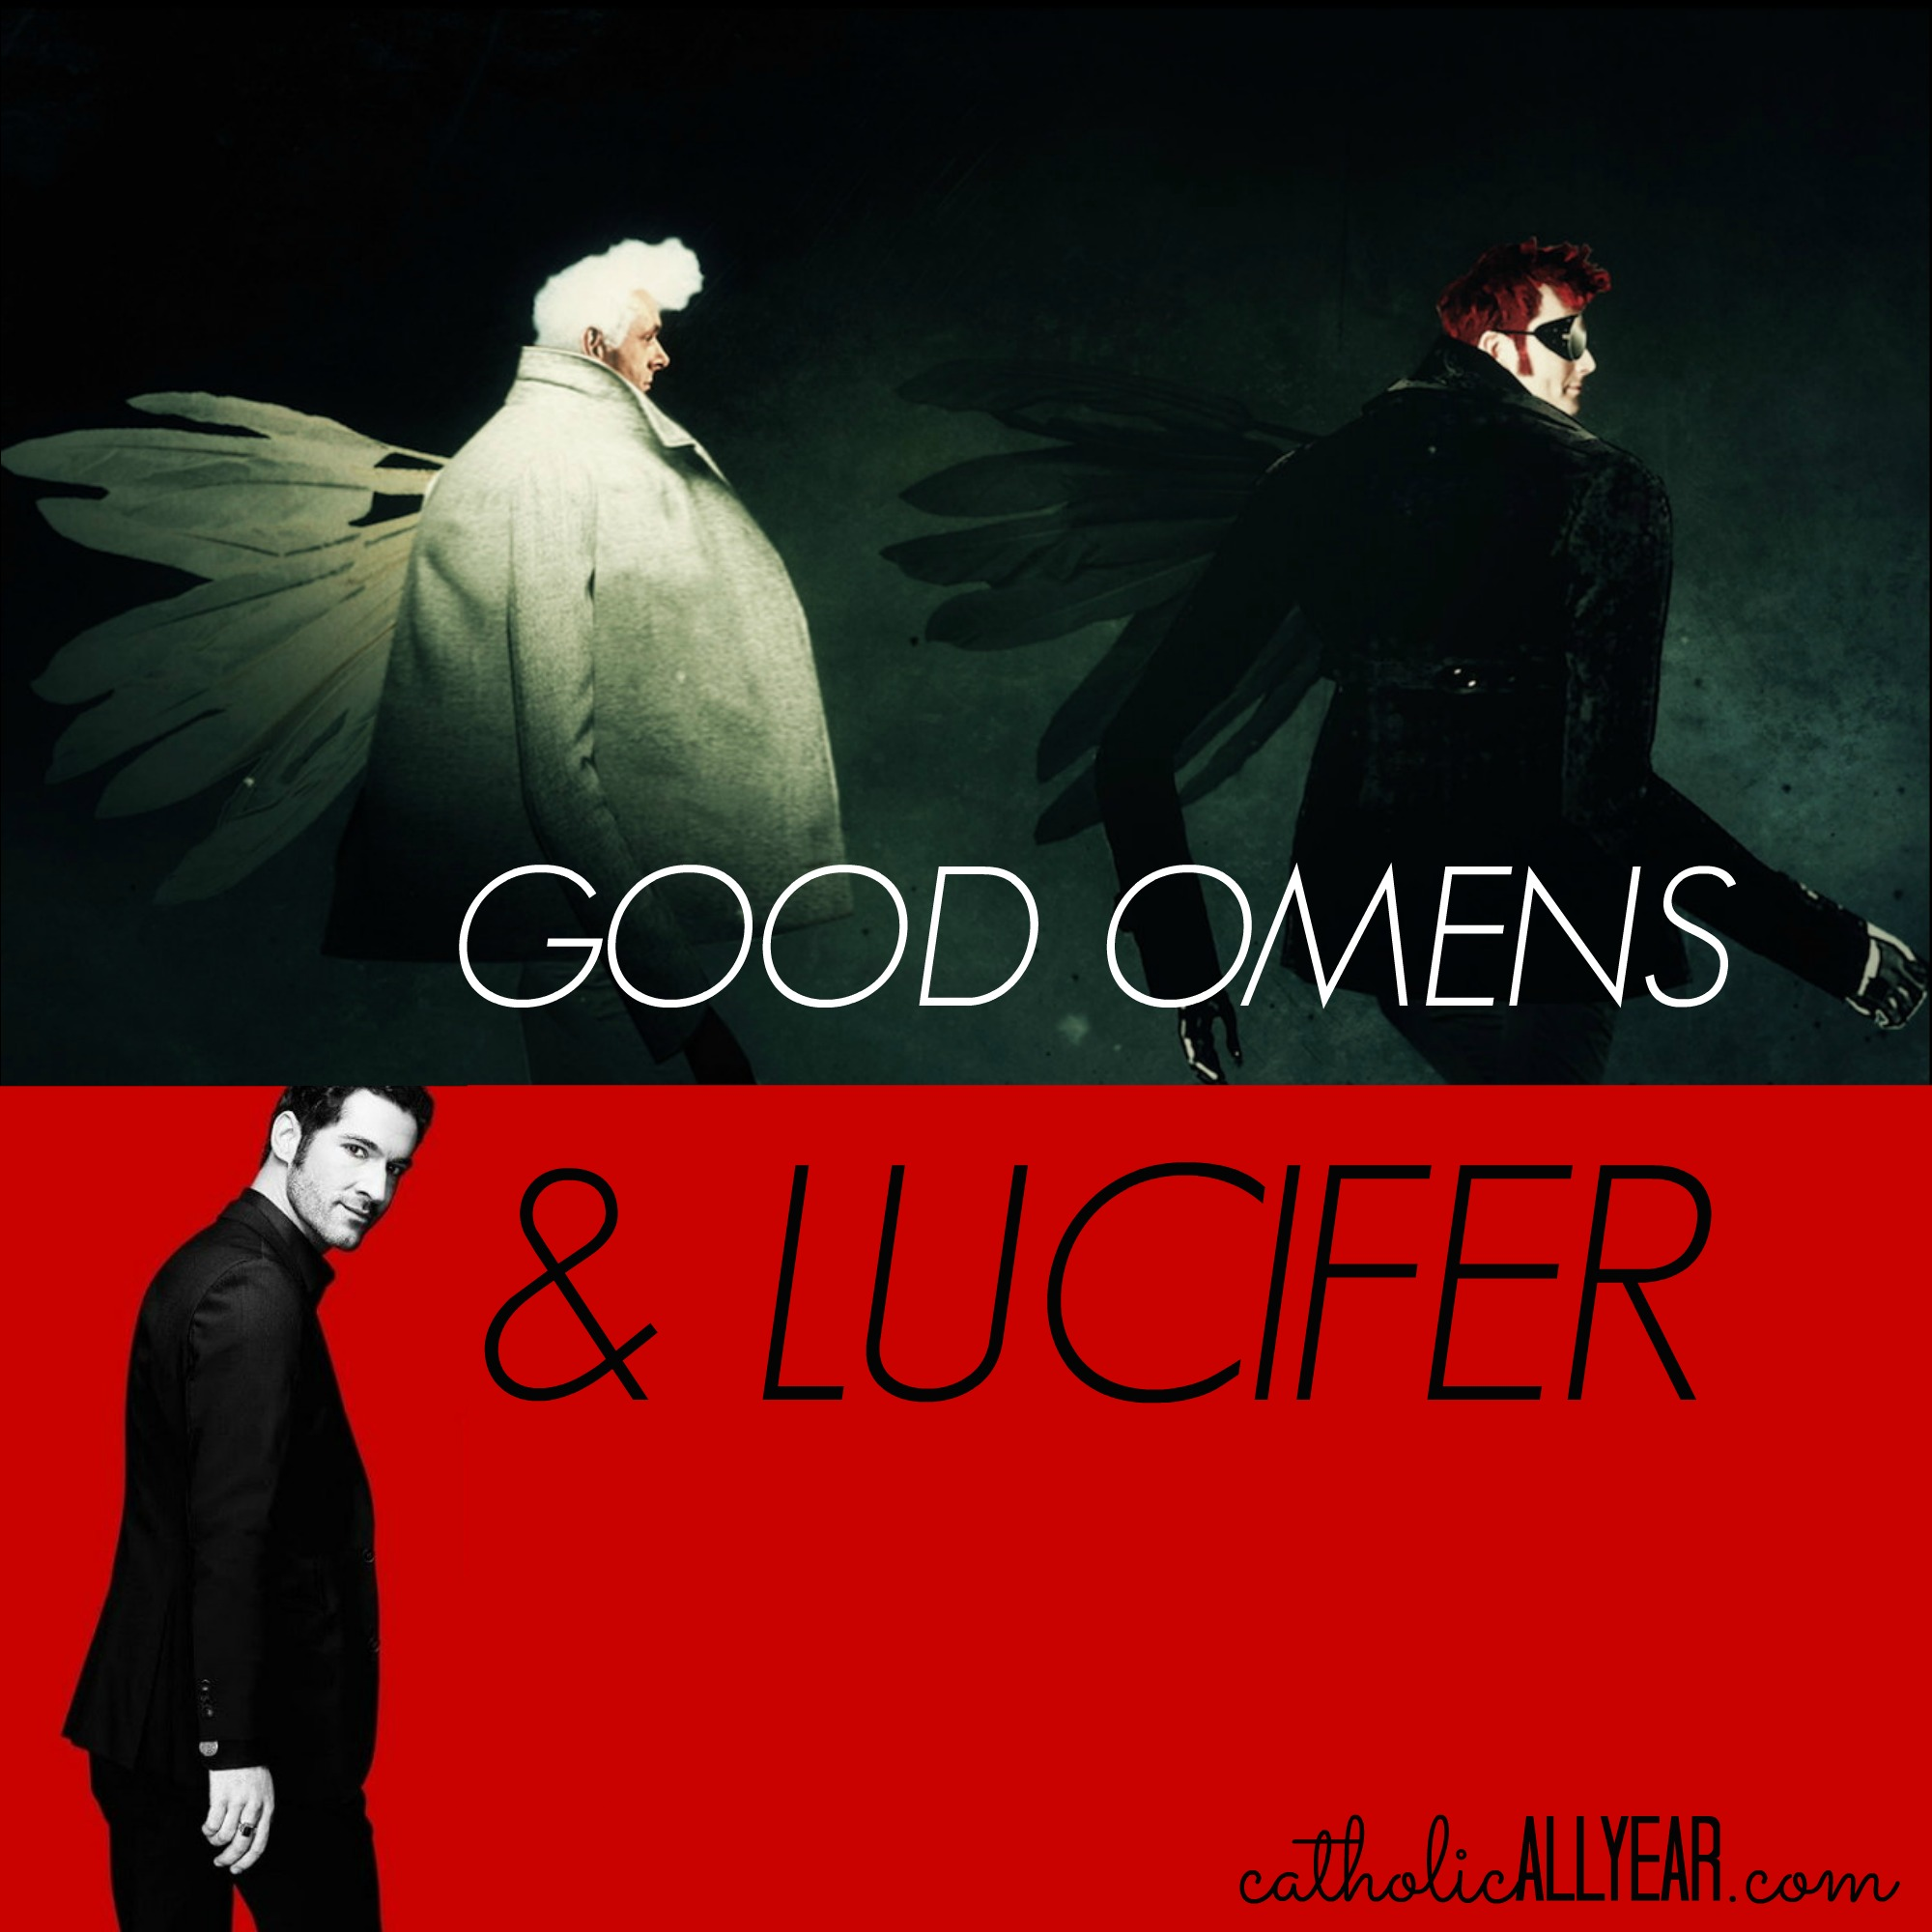 'Good Omens' and 'Lucifer' Are Both Wrong About Angels and Devils, but One of Them Is also Wrong About God and Human Beings